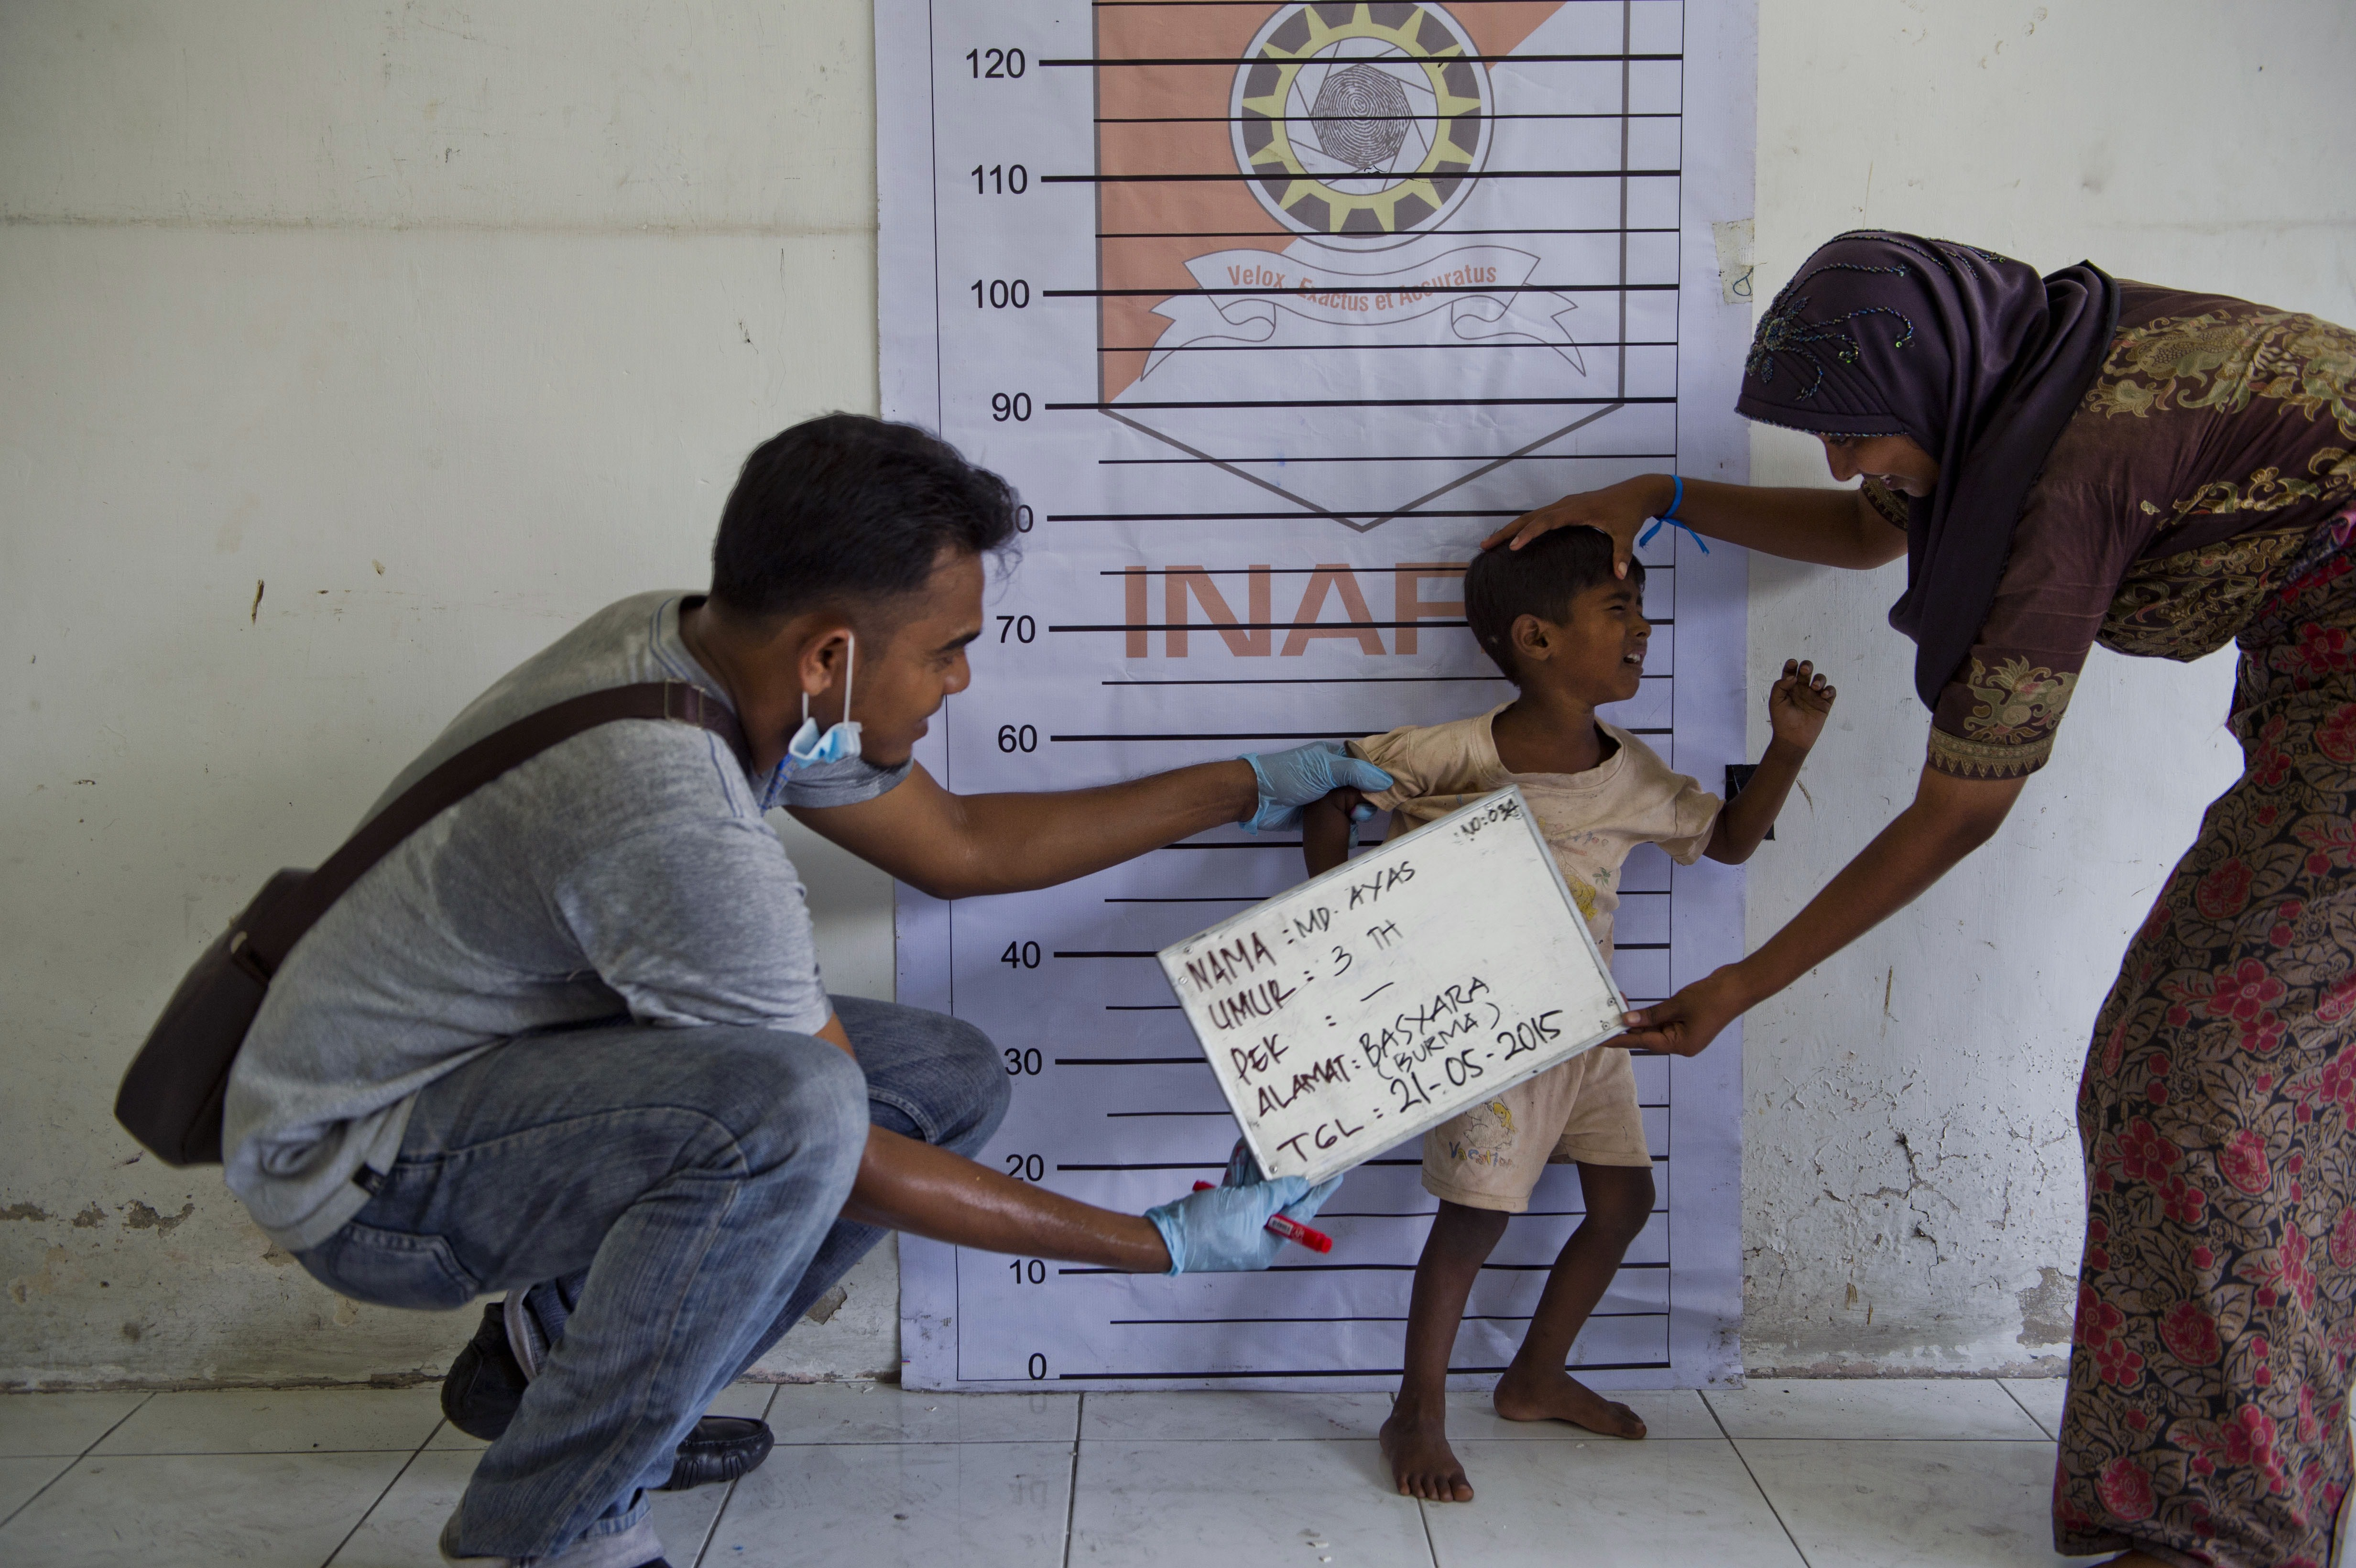 """To go with """"SEAsia migrants Indonesia"""", Focus by Olivia RondonuwuIn this picture taken on May 21, 2015, a Rohingya boy (C) from Myanmar is photographed during police identification procedures at a newly set up confinement area in Bayeun, Aceh province after more than 400 Rohingya migrants from Myanmar and Bangladesh were rescued by Indonesian fishermen off the waters of the province on May 20. Boat people who have come ashore in Southeast Asia after harrowing journeys are delighted that Indonesia and Malaysia will give them temporary shelter -- although some were baffled by an offer of sanctuary in a tiny African nation they had never heard of. There was some confusion over an offer from the impoverished West African nation of Gambia to take in all Rohingya migrants as part of its """"sacred duty"""" to alleviate the suffering of fellow Muslims. AFP PHOTO / ROMEO GACAD (Photo credit should read ROMEO GACAD/AFP/Getty Images)"""